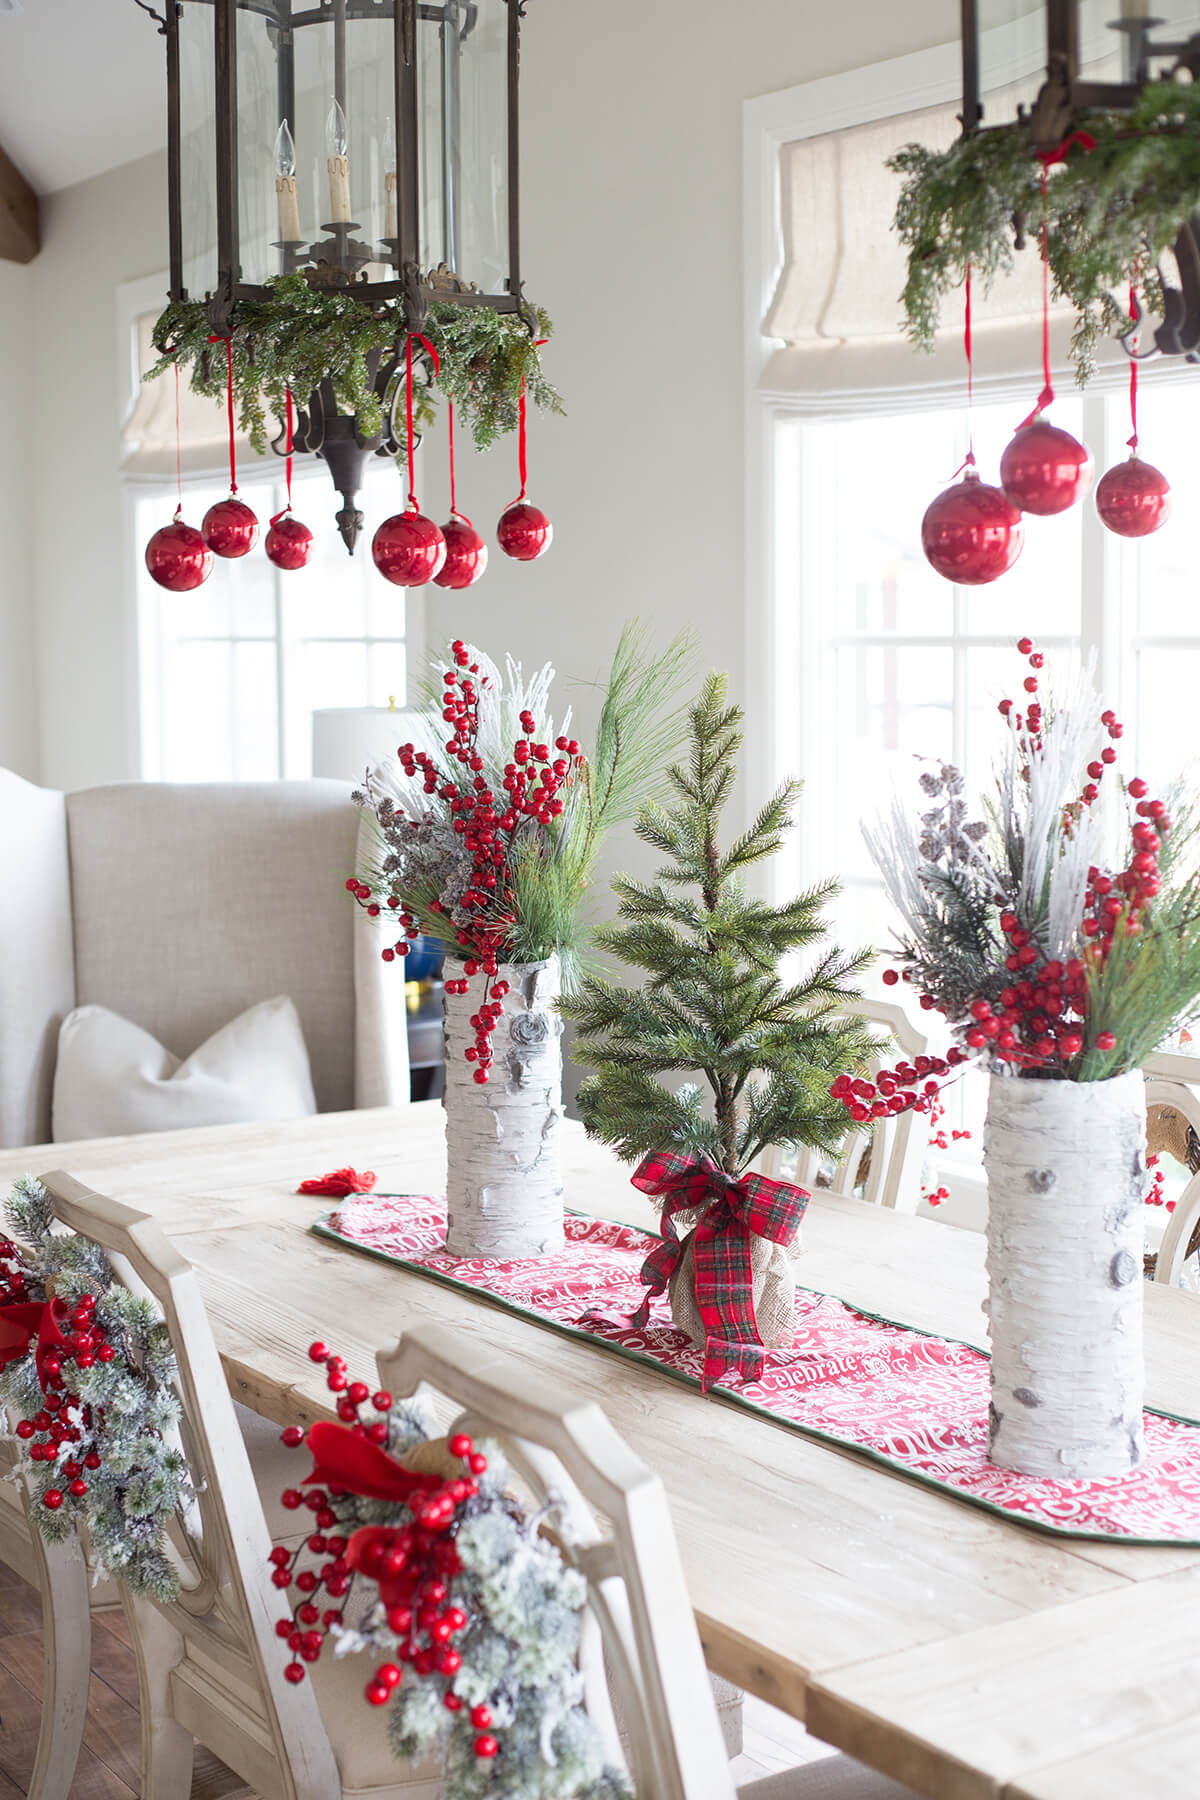 Berries Galore and Ornament Chandeliers